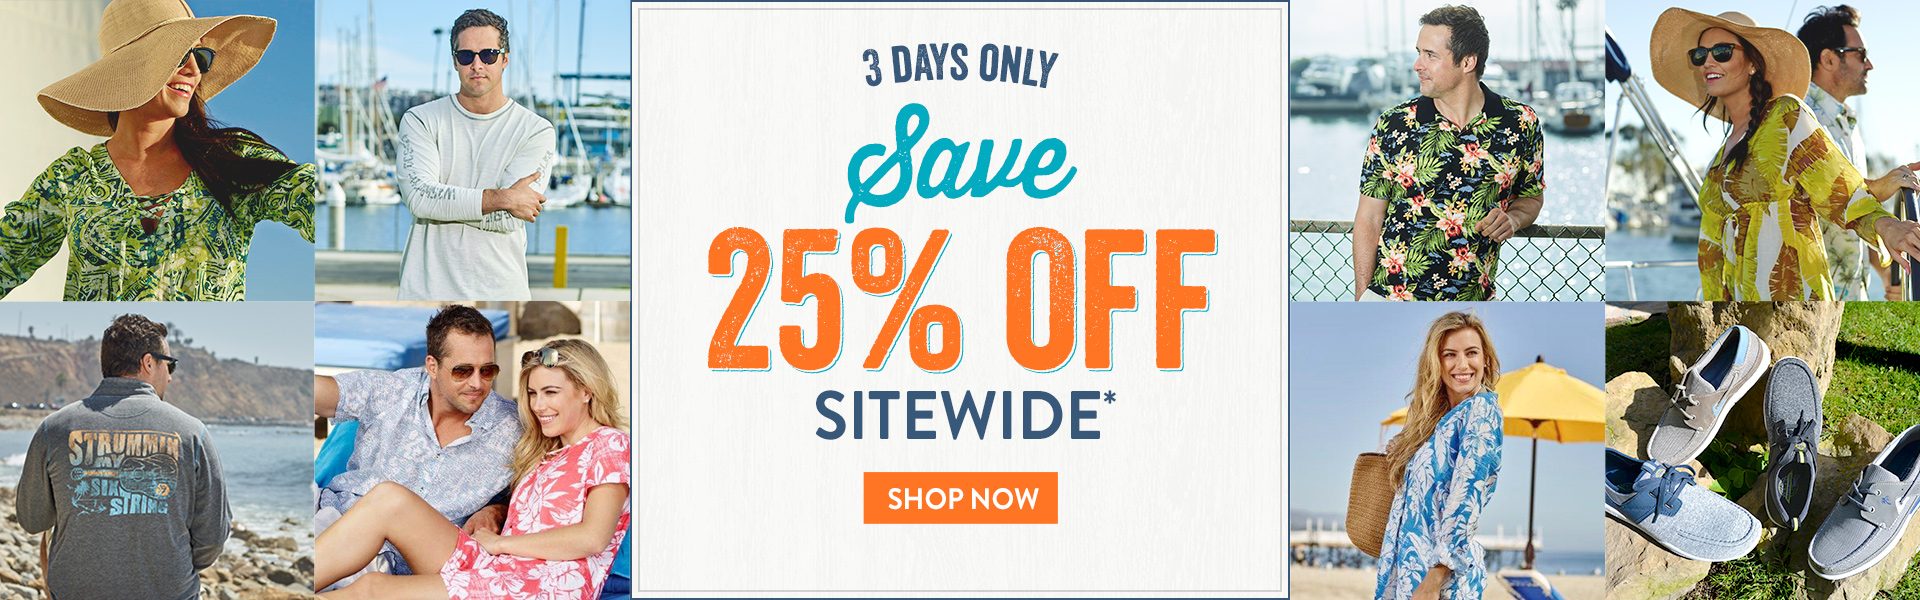 25% off Sitewide - 7/14-7/16/18